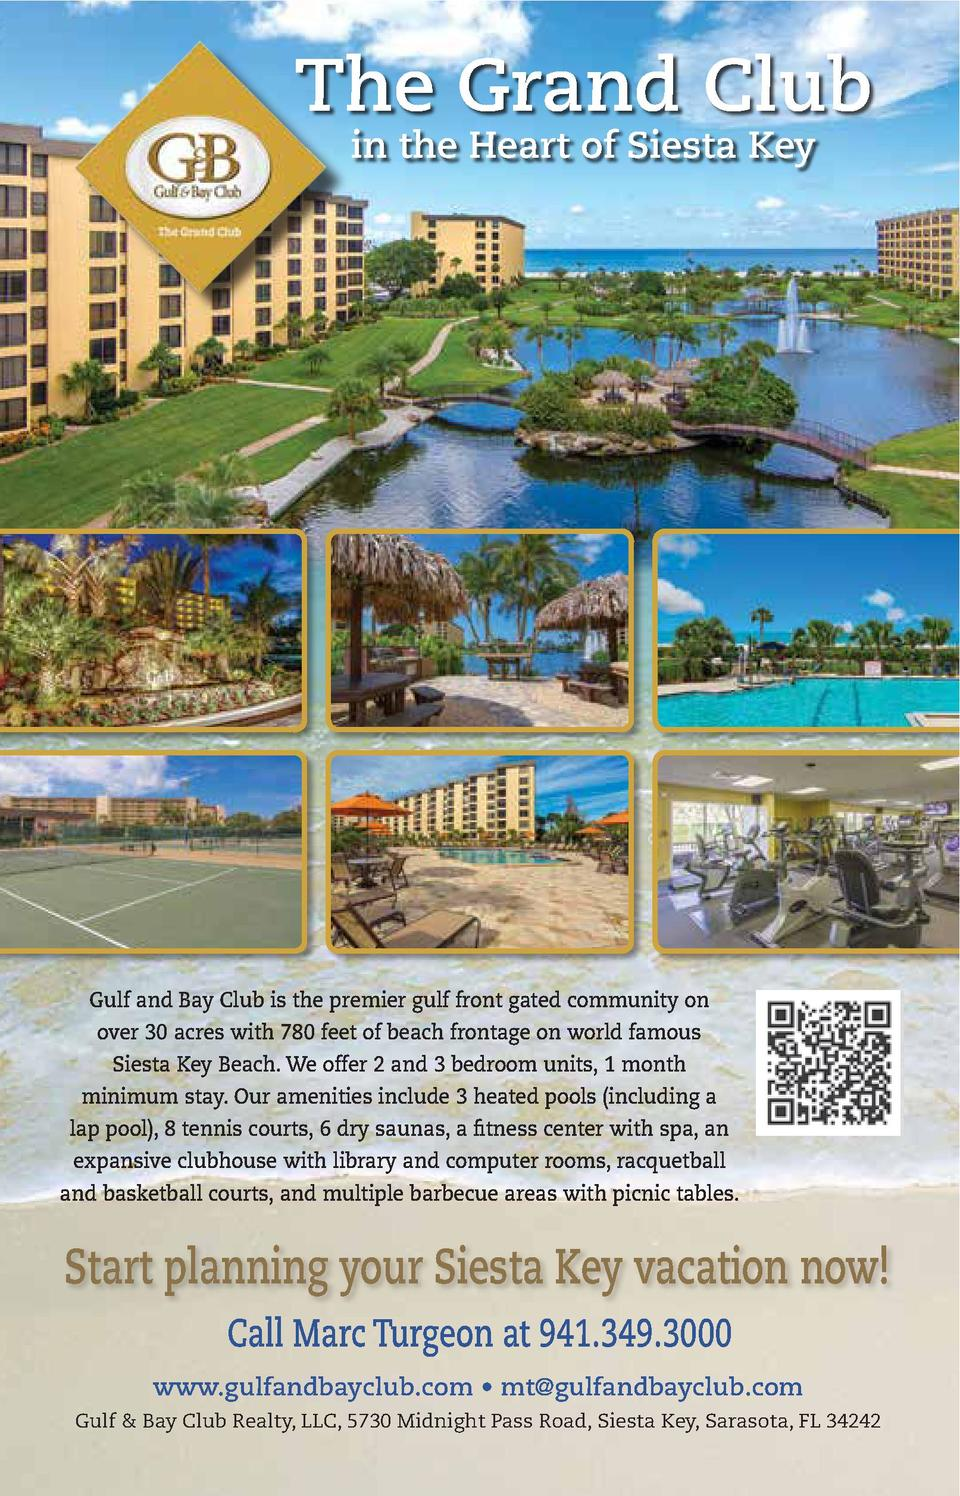 The Grand Club in the Heart of Siesta Key  Gulf and Bay Club is the premier gulf front gated community on over 30 acres wi...